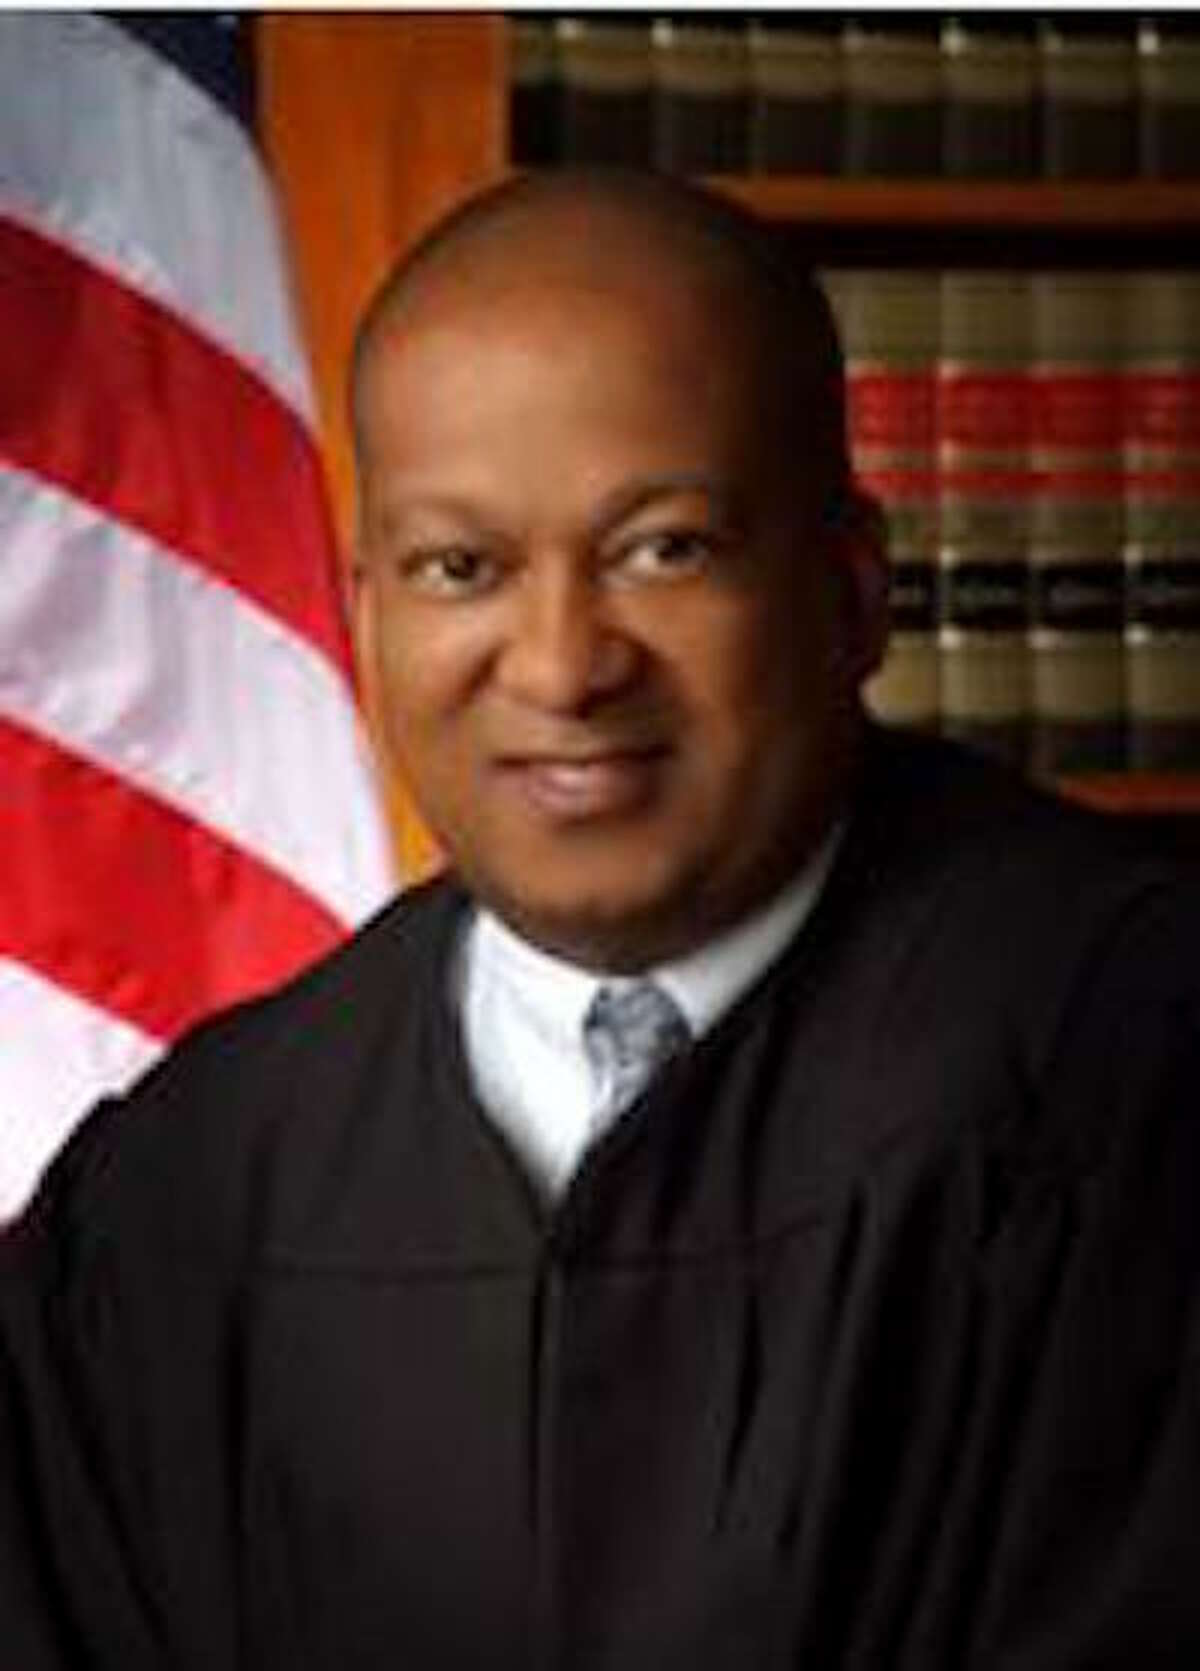 Justice Jeffrey Johnson of the Second District Court of Appeal in Los Angeles. California's judicial disciplinary agency has accused Johnson of sexually harassing and groping a fellow justice, harassing attorneys, court staff and a California Highway Patrol officer, and repeatedly appearing drunk in public.Johnson said Tuesday, Jan. 22, 2019 that accusations against him of groping a fellow justice and harassing other women in and around the courthouse are false and the other incidents were either misunderstood banter or outright fabrications. Johnson's response came through his attorneys in answer to complaints filed this month by the state Commission on Judicial Performance.